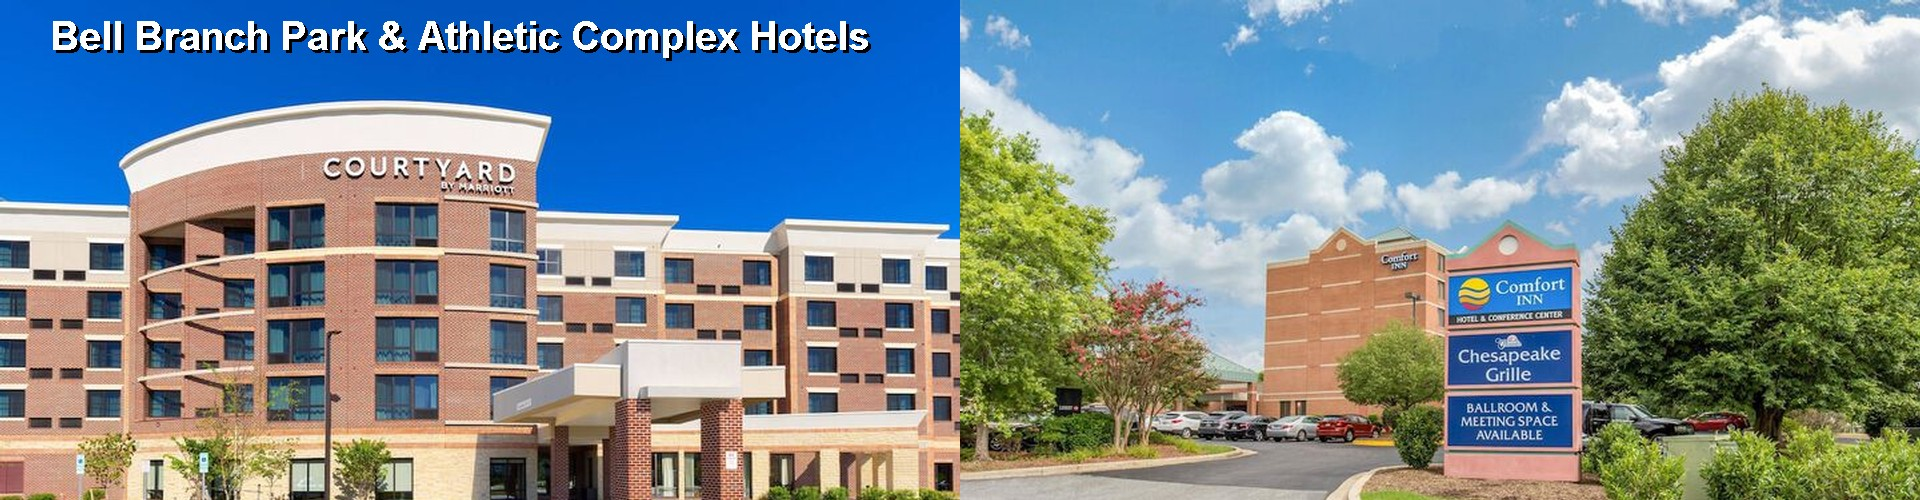 5 Best Hotels near Bell Branch Park & Athletic Complex